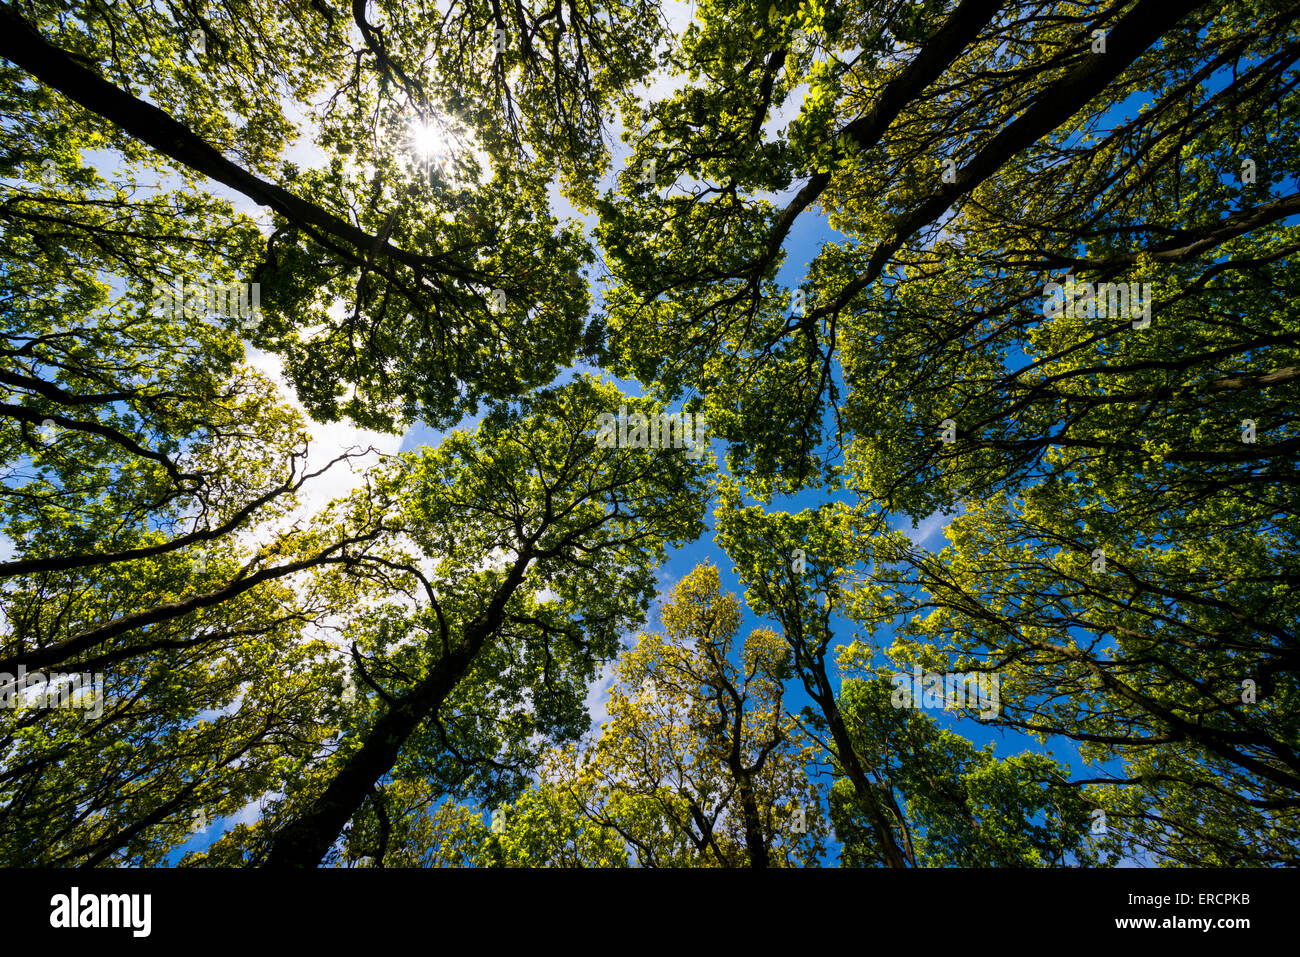 Oak tree canopy in The Ercall woods, Shropshire, England. - Stock Image